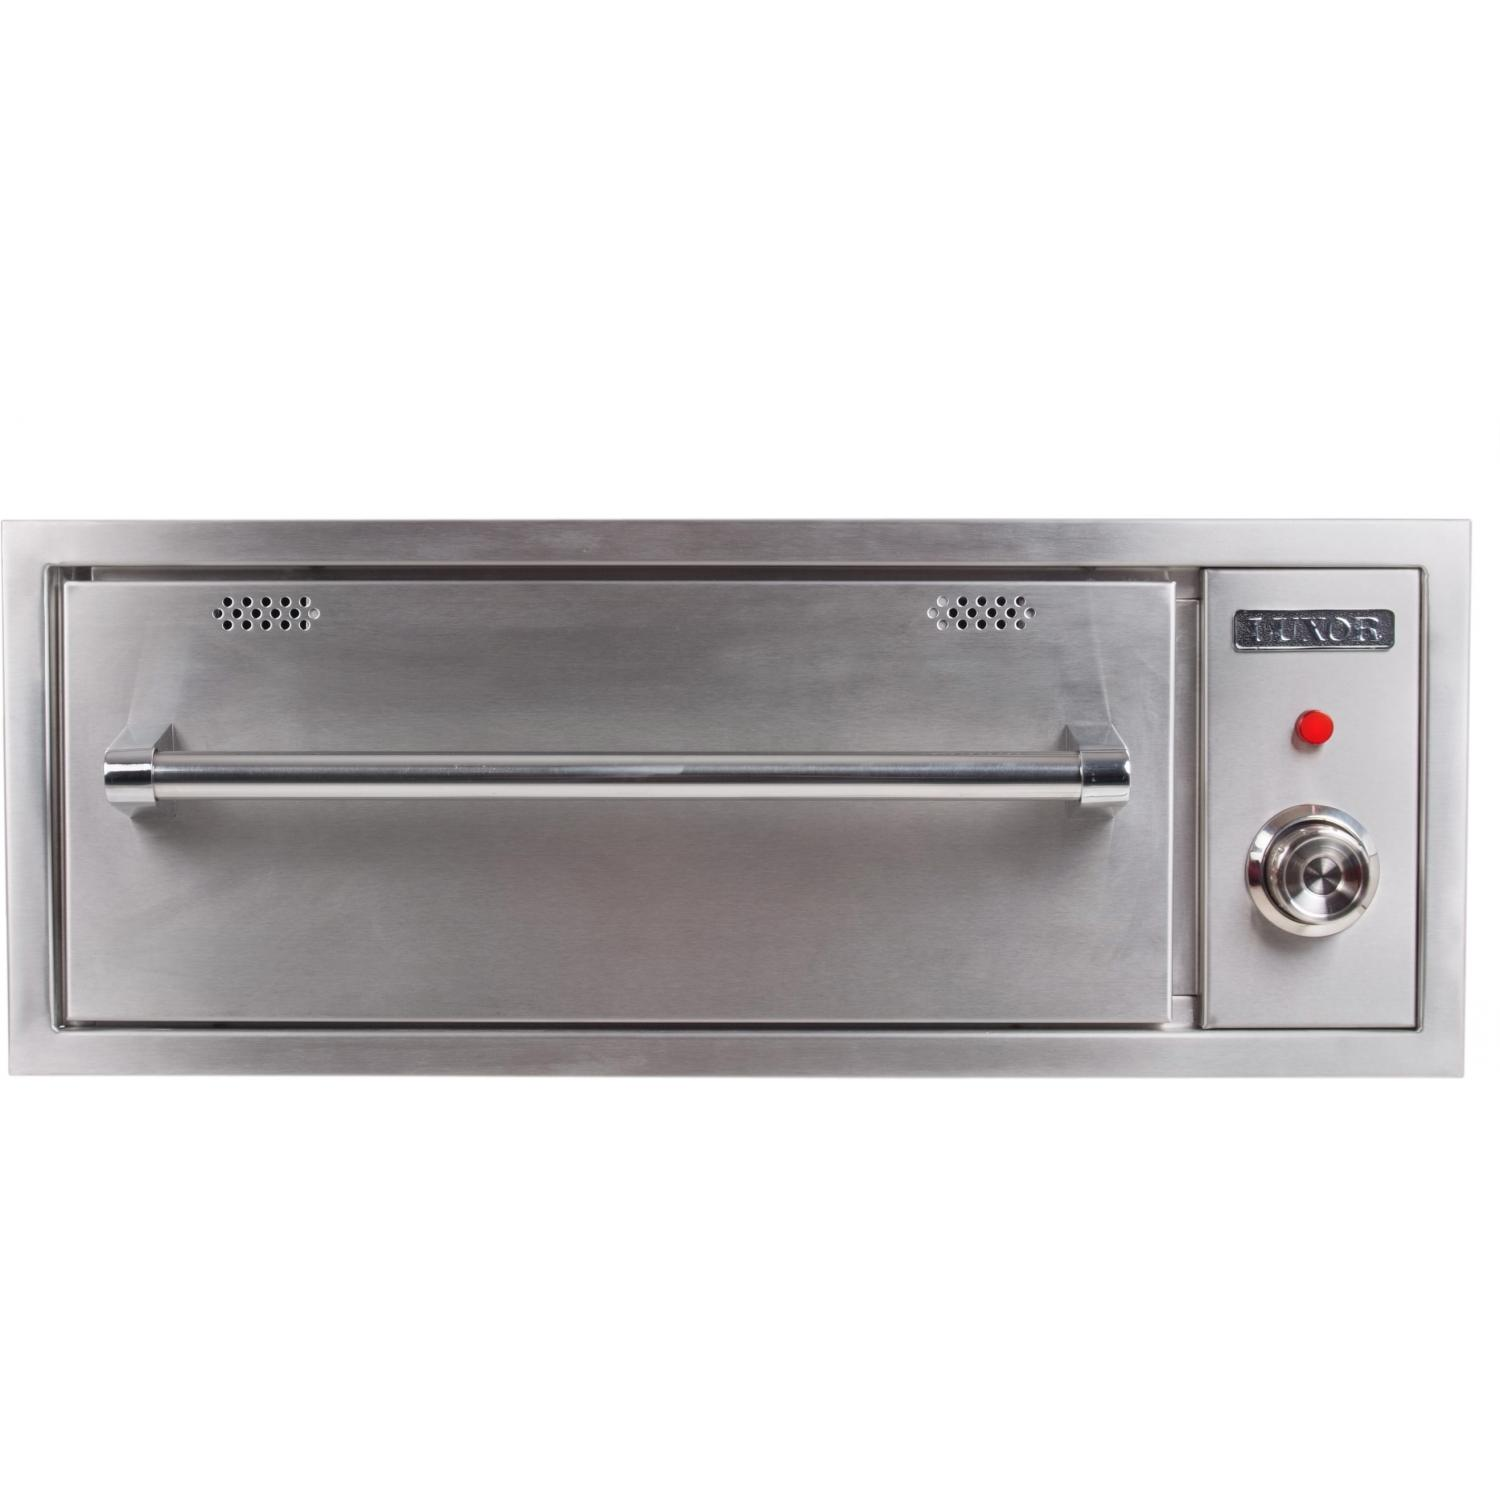 Luxor 30 Inch Outdoor Warming Drawer AHT-WD-30